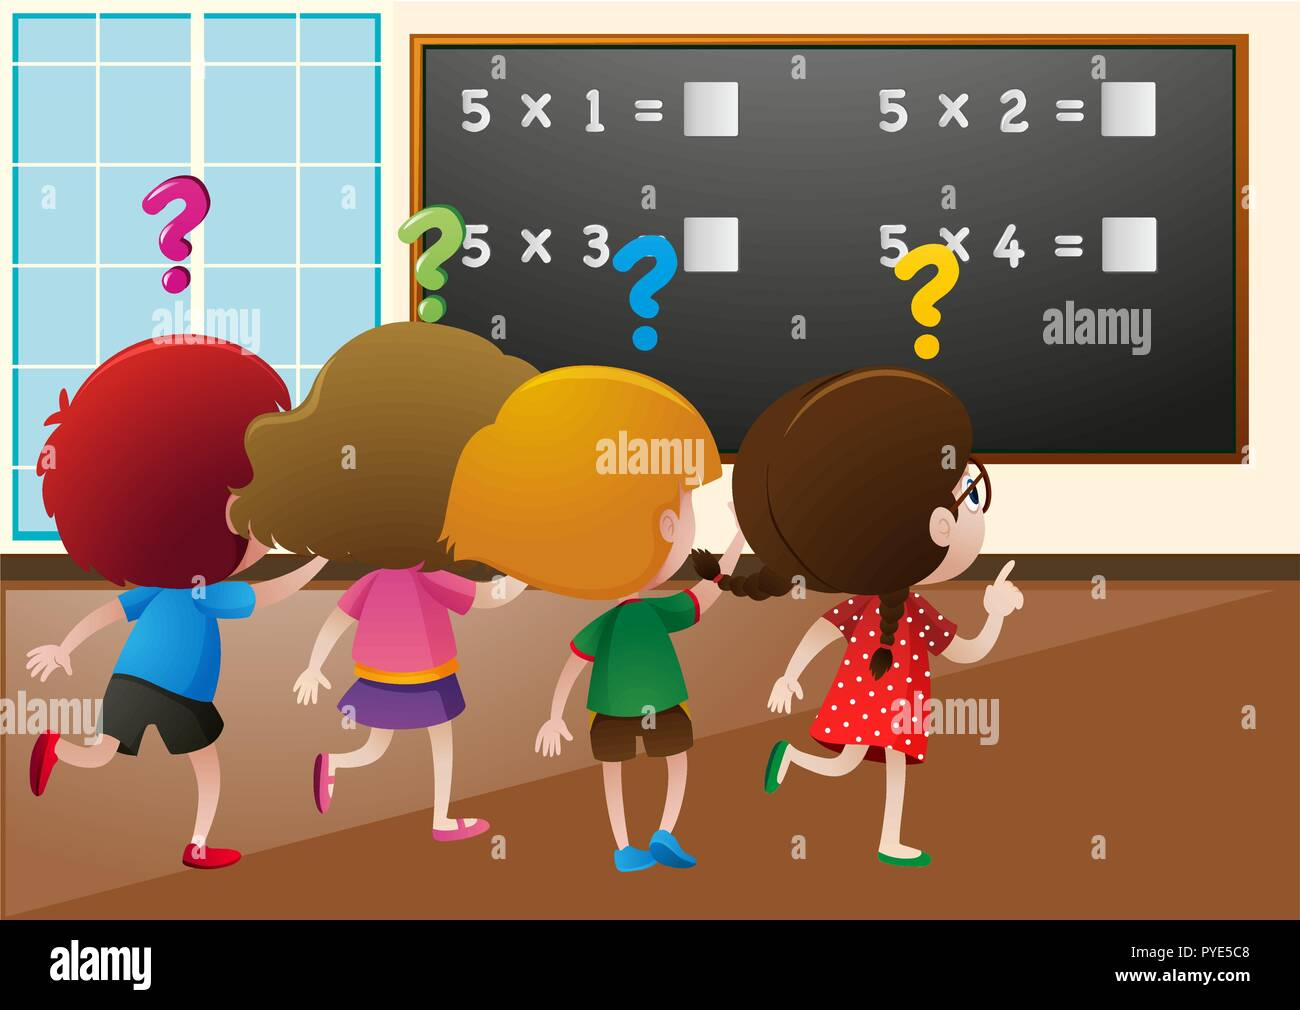 Students working out math problem in class illustration - Stock Vector